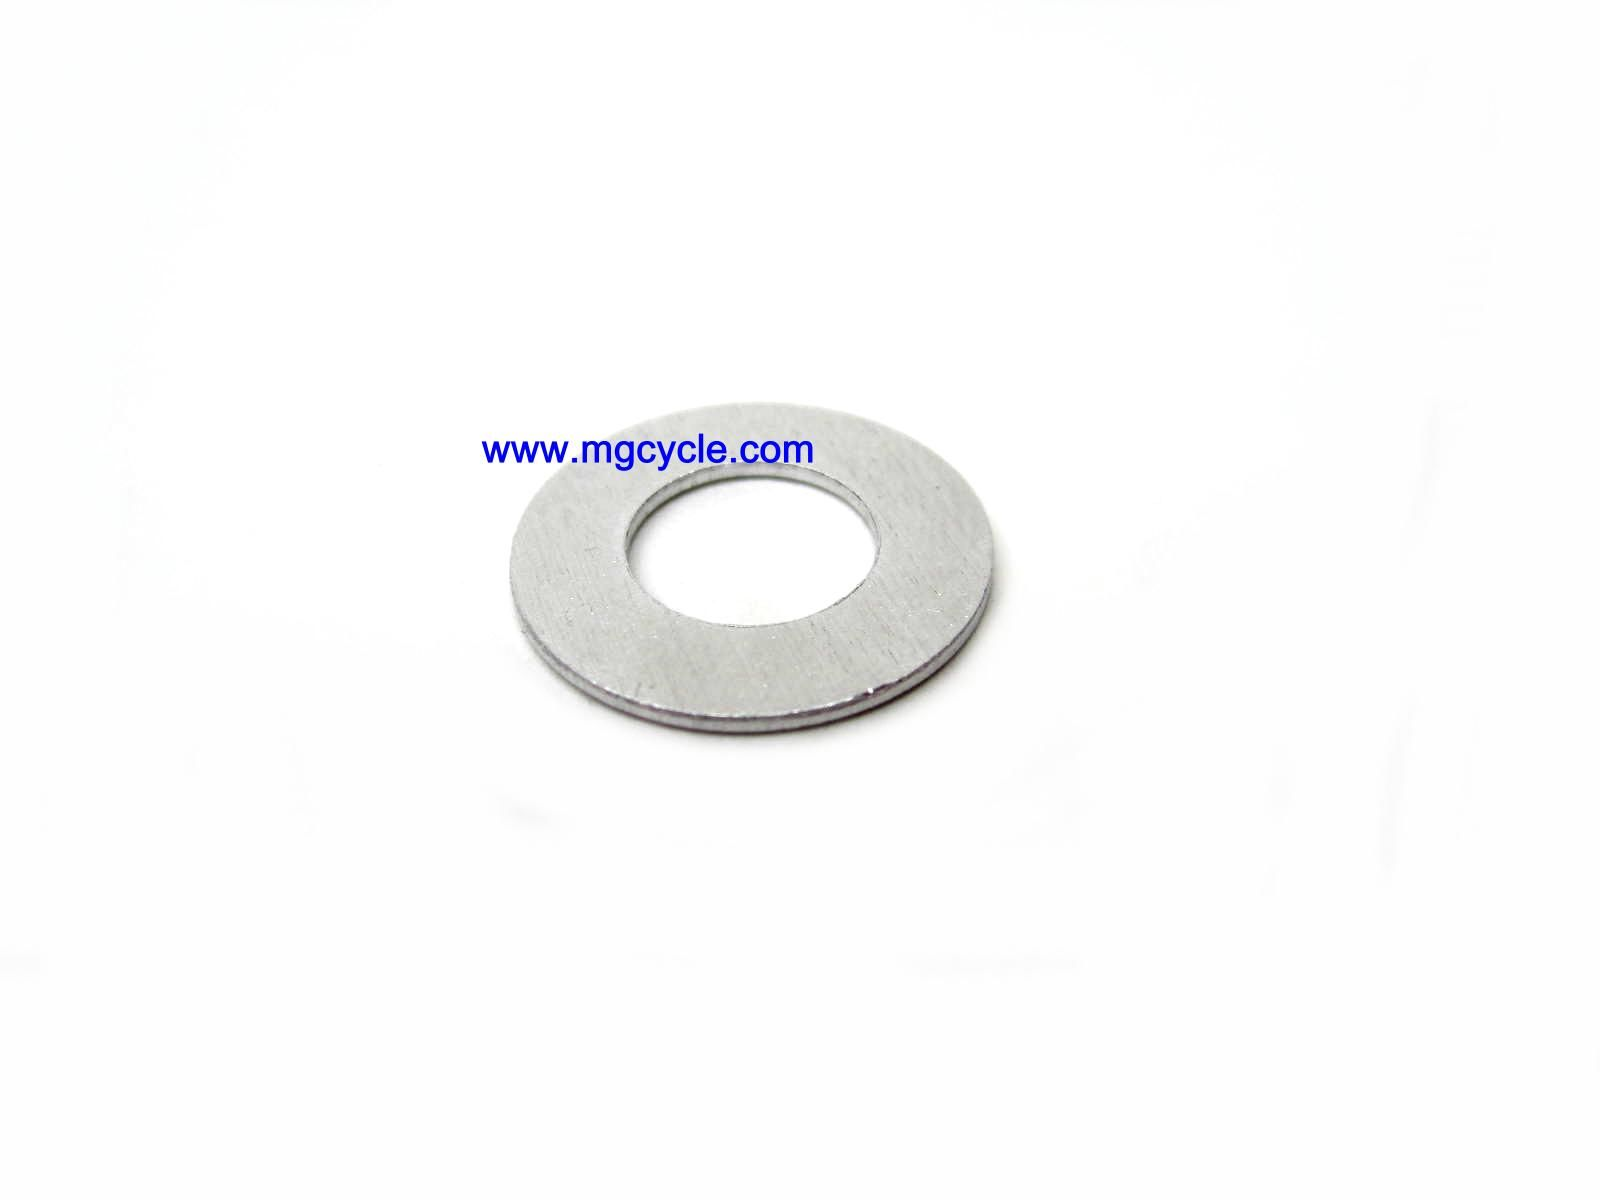 10mm alu sealing washer for overflow and drain plugs